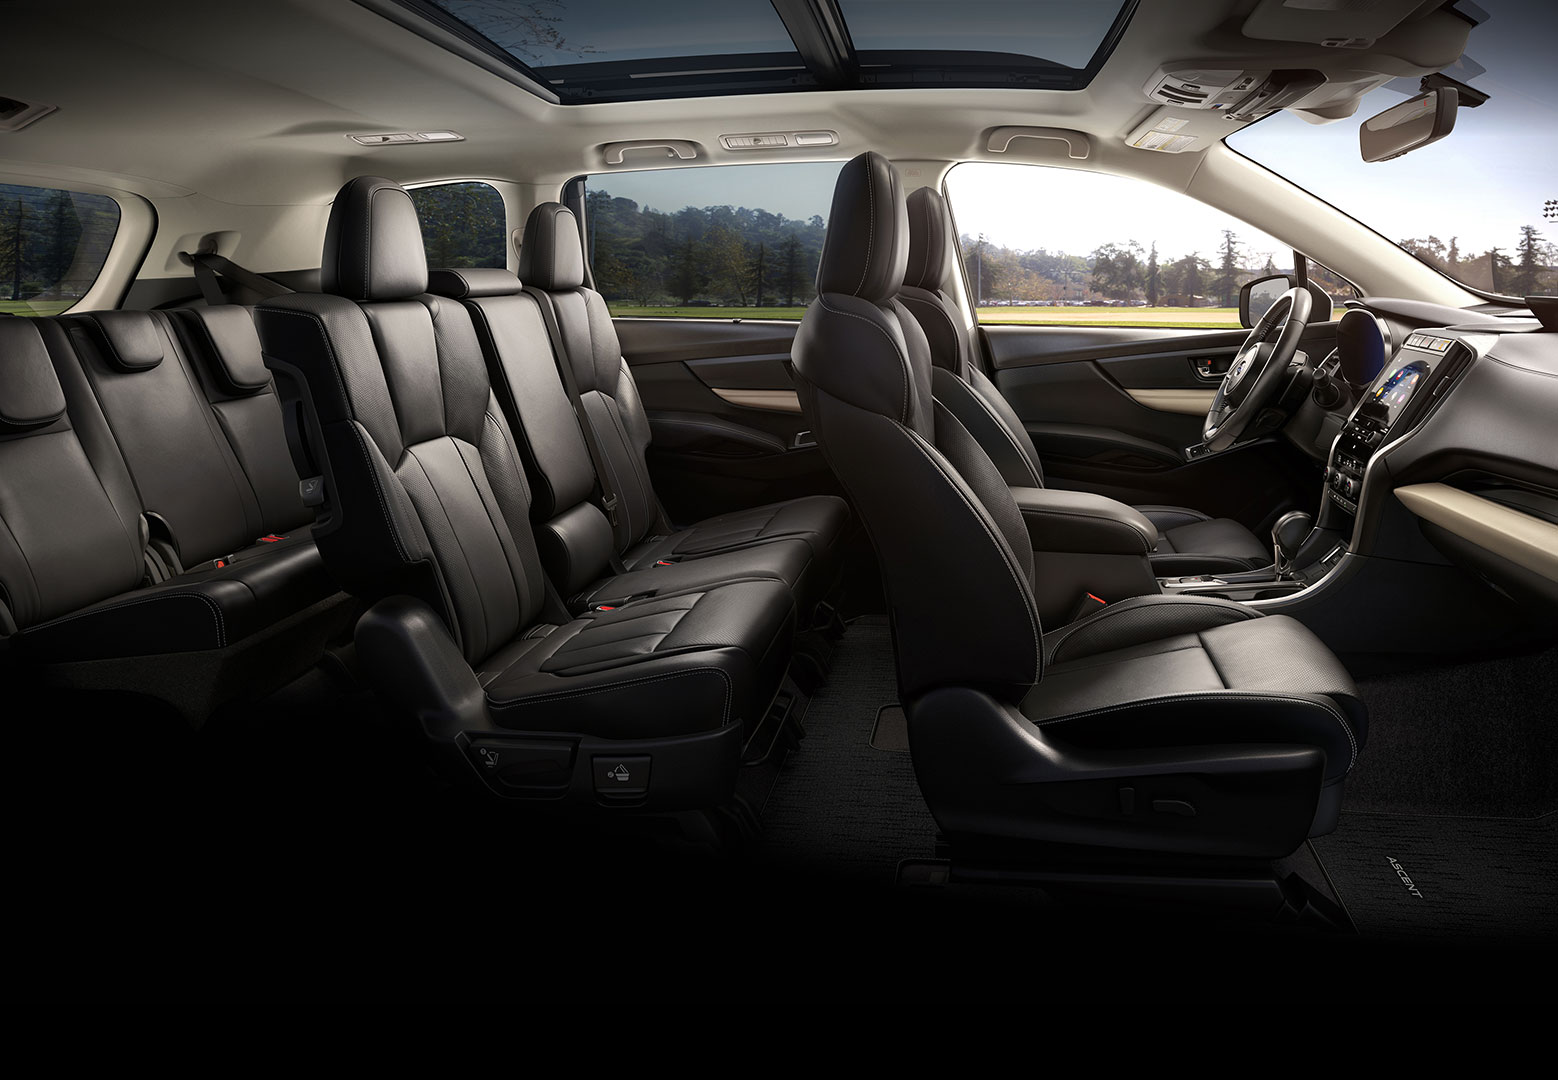 Black Leather Interior Pictures...Finally - Subaru Ascent ...